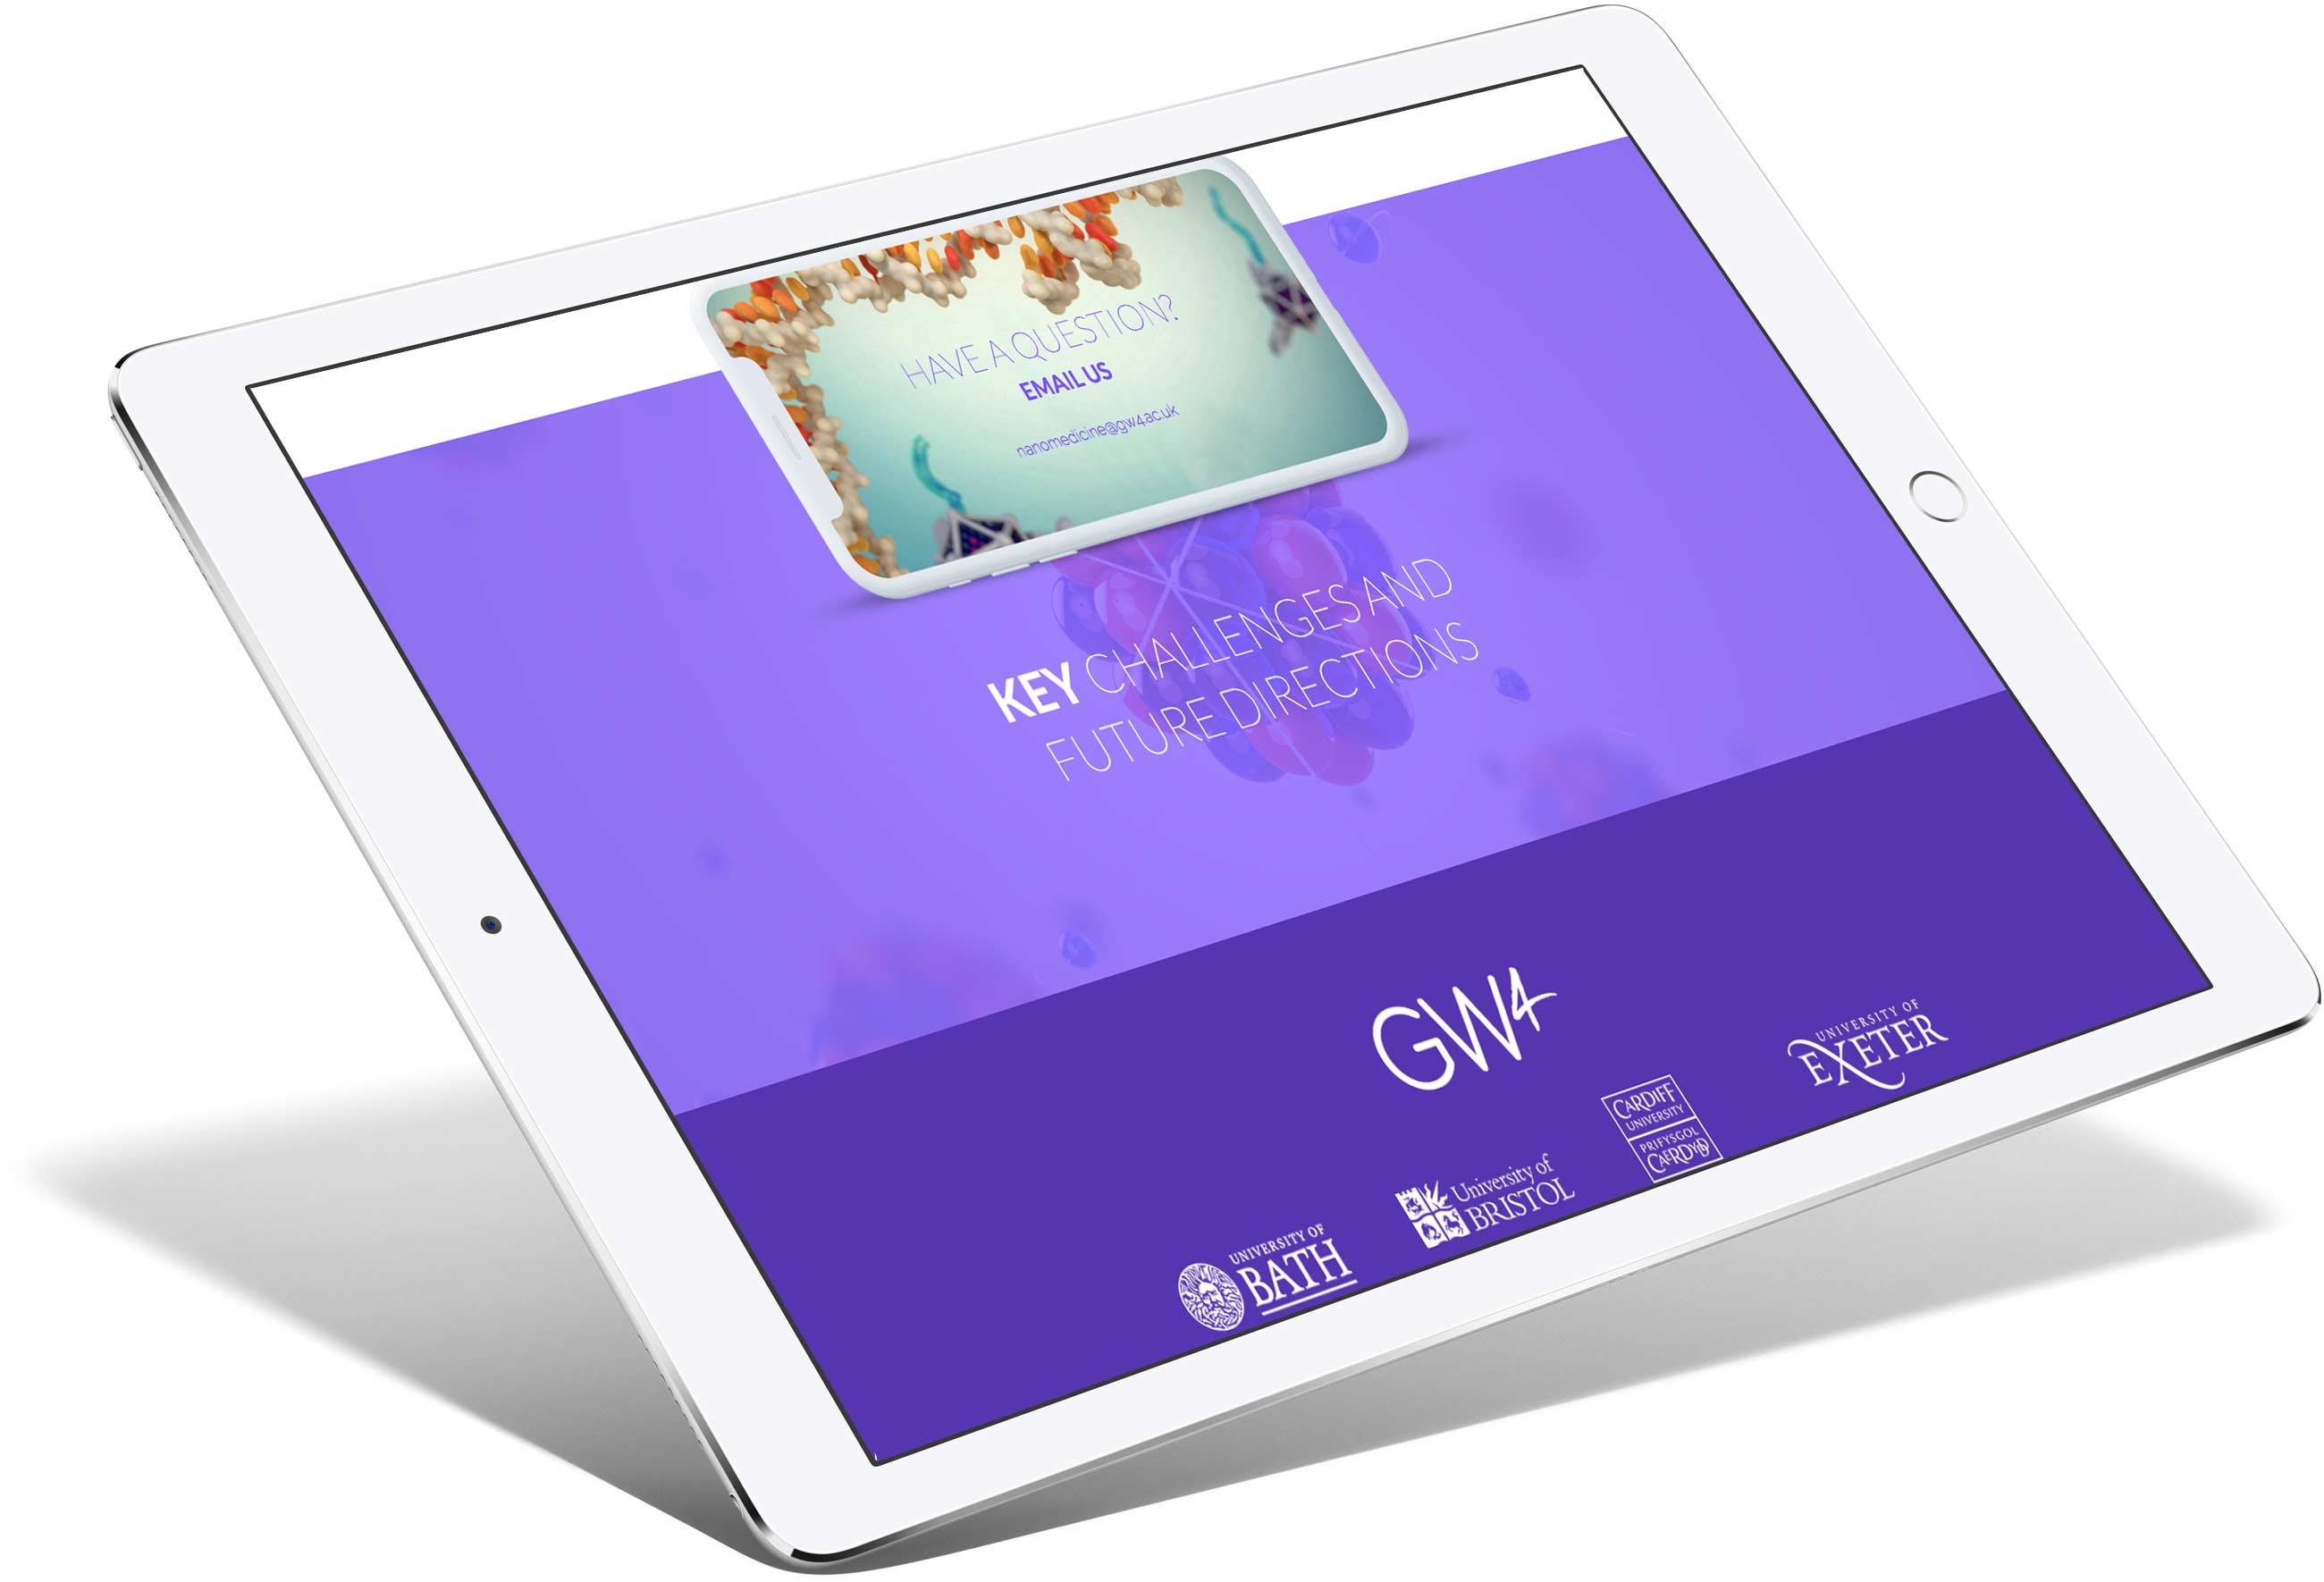 GW4 NanoMedicine | Responsive Website